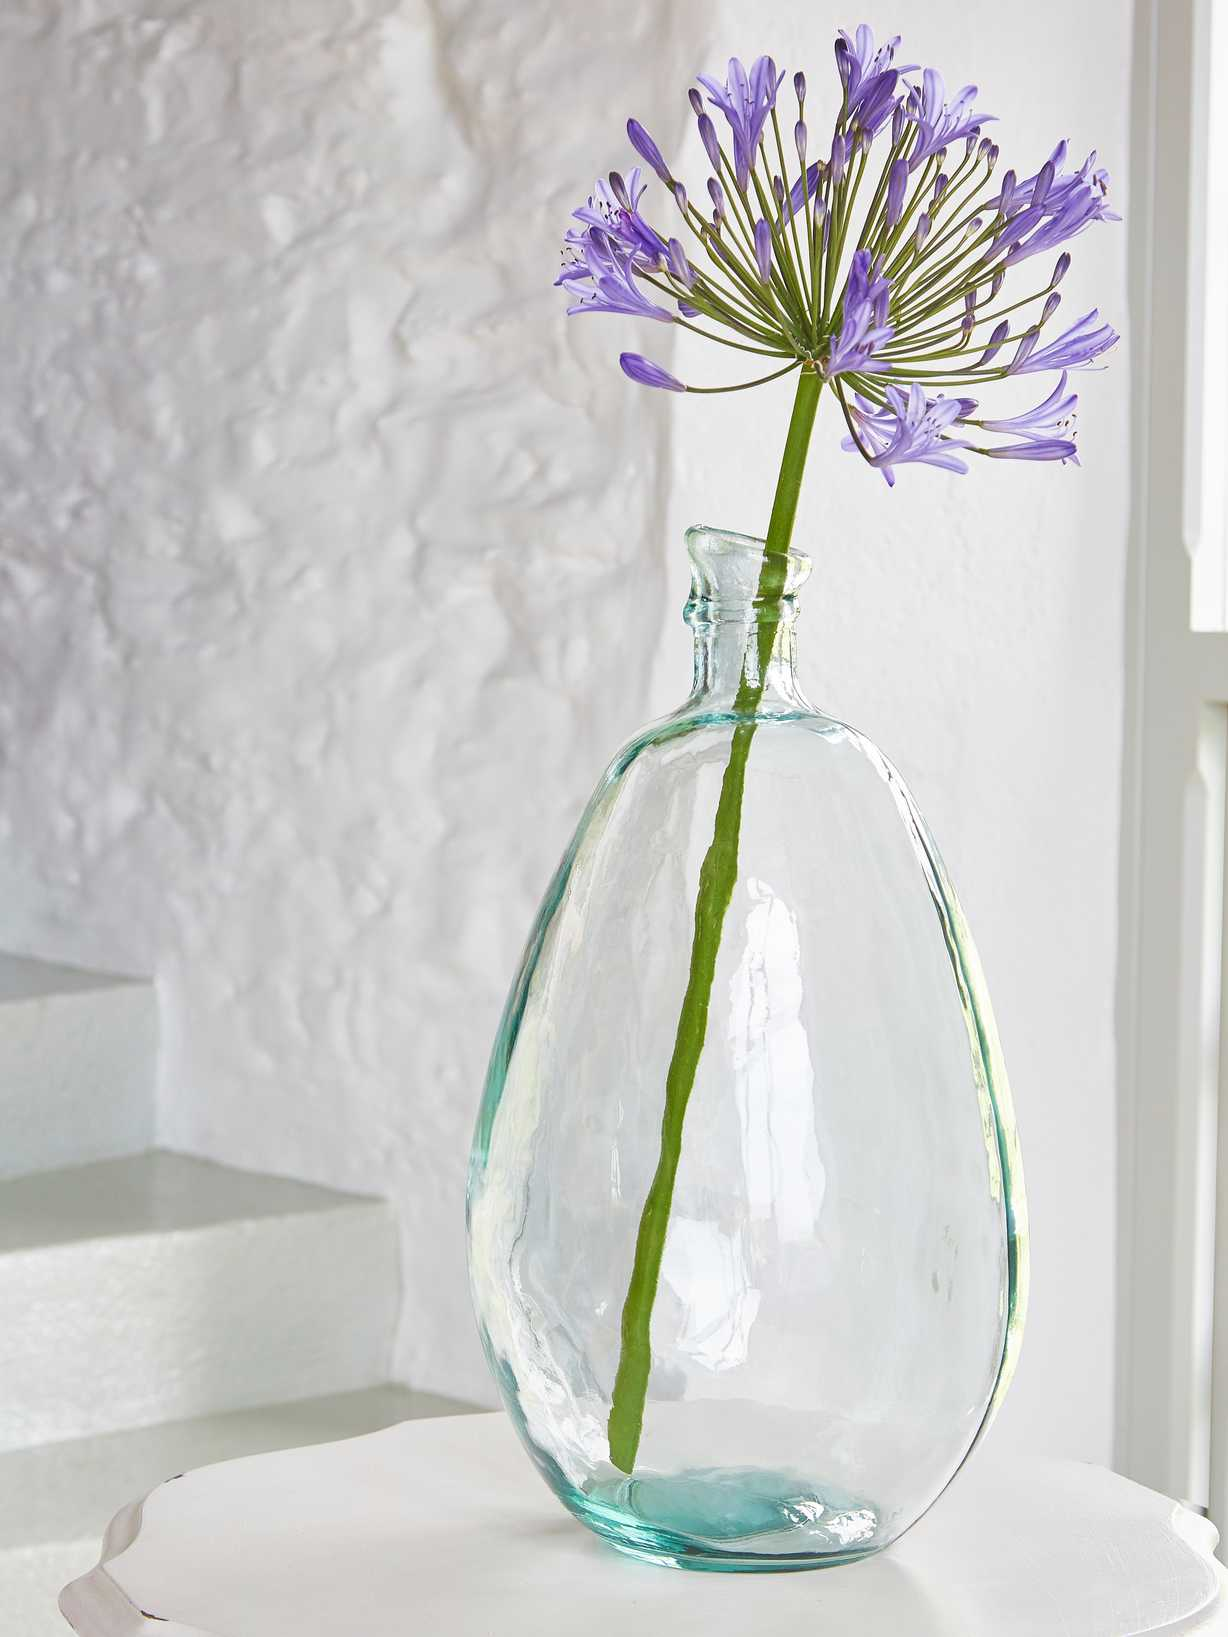 Nordic House Recycled Glass Bottle - L